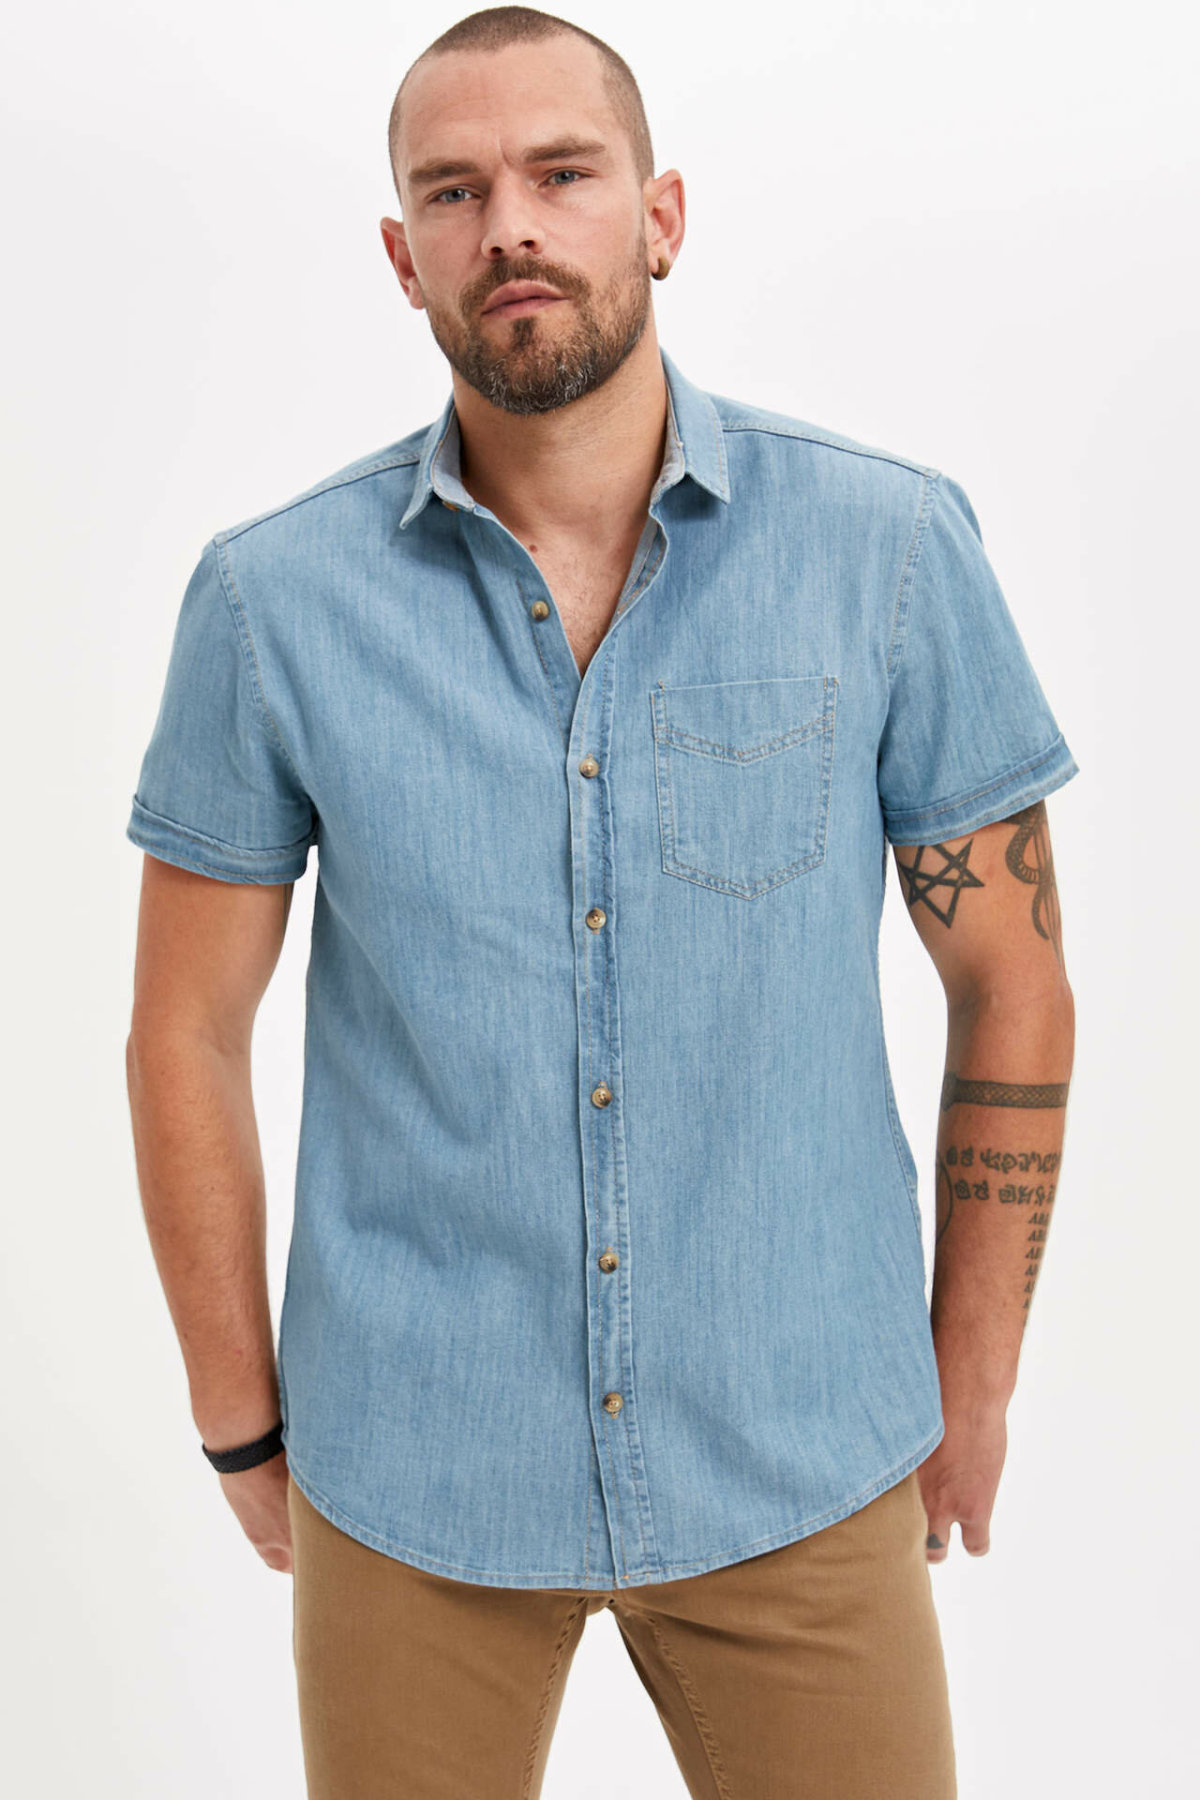 DeFacto Shirt Summer Men's Fashion Short Sleeve Blouser Male Casual Denim Comfort Shirts Men High Quality Tops New - L7440AZ19SM